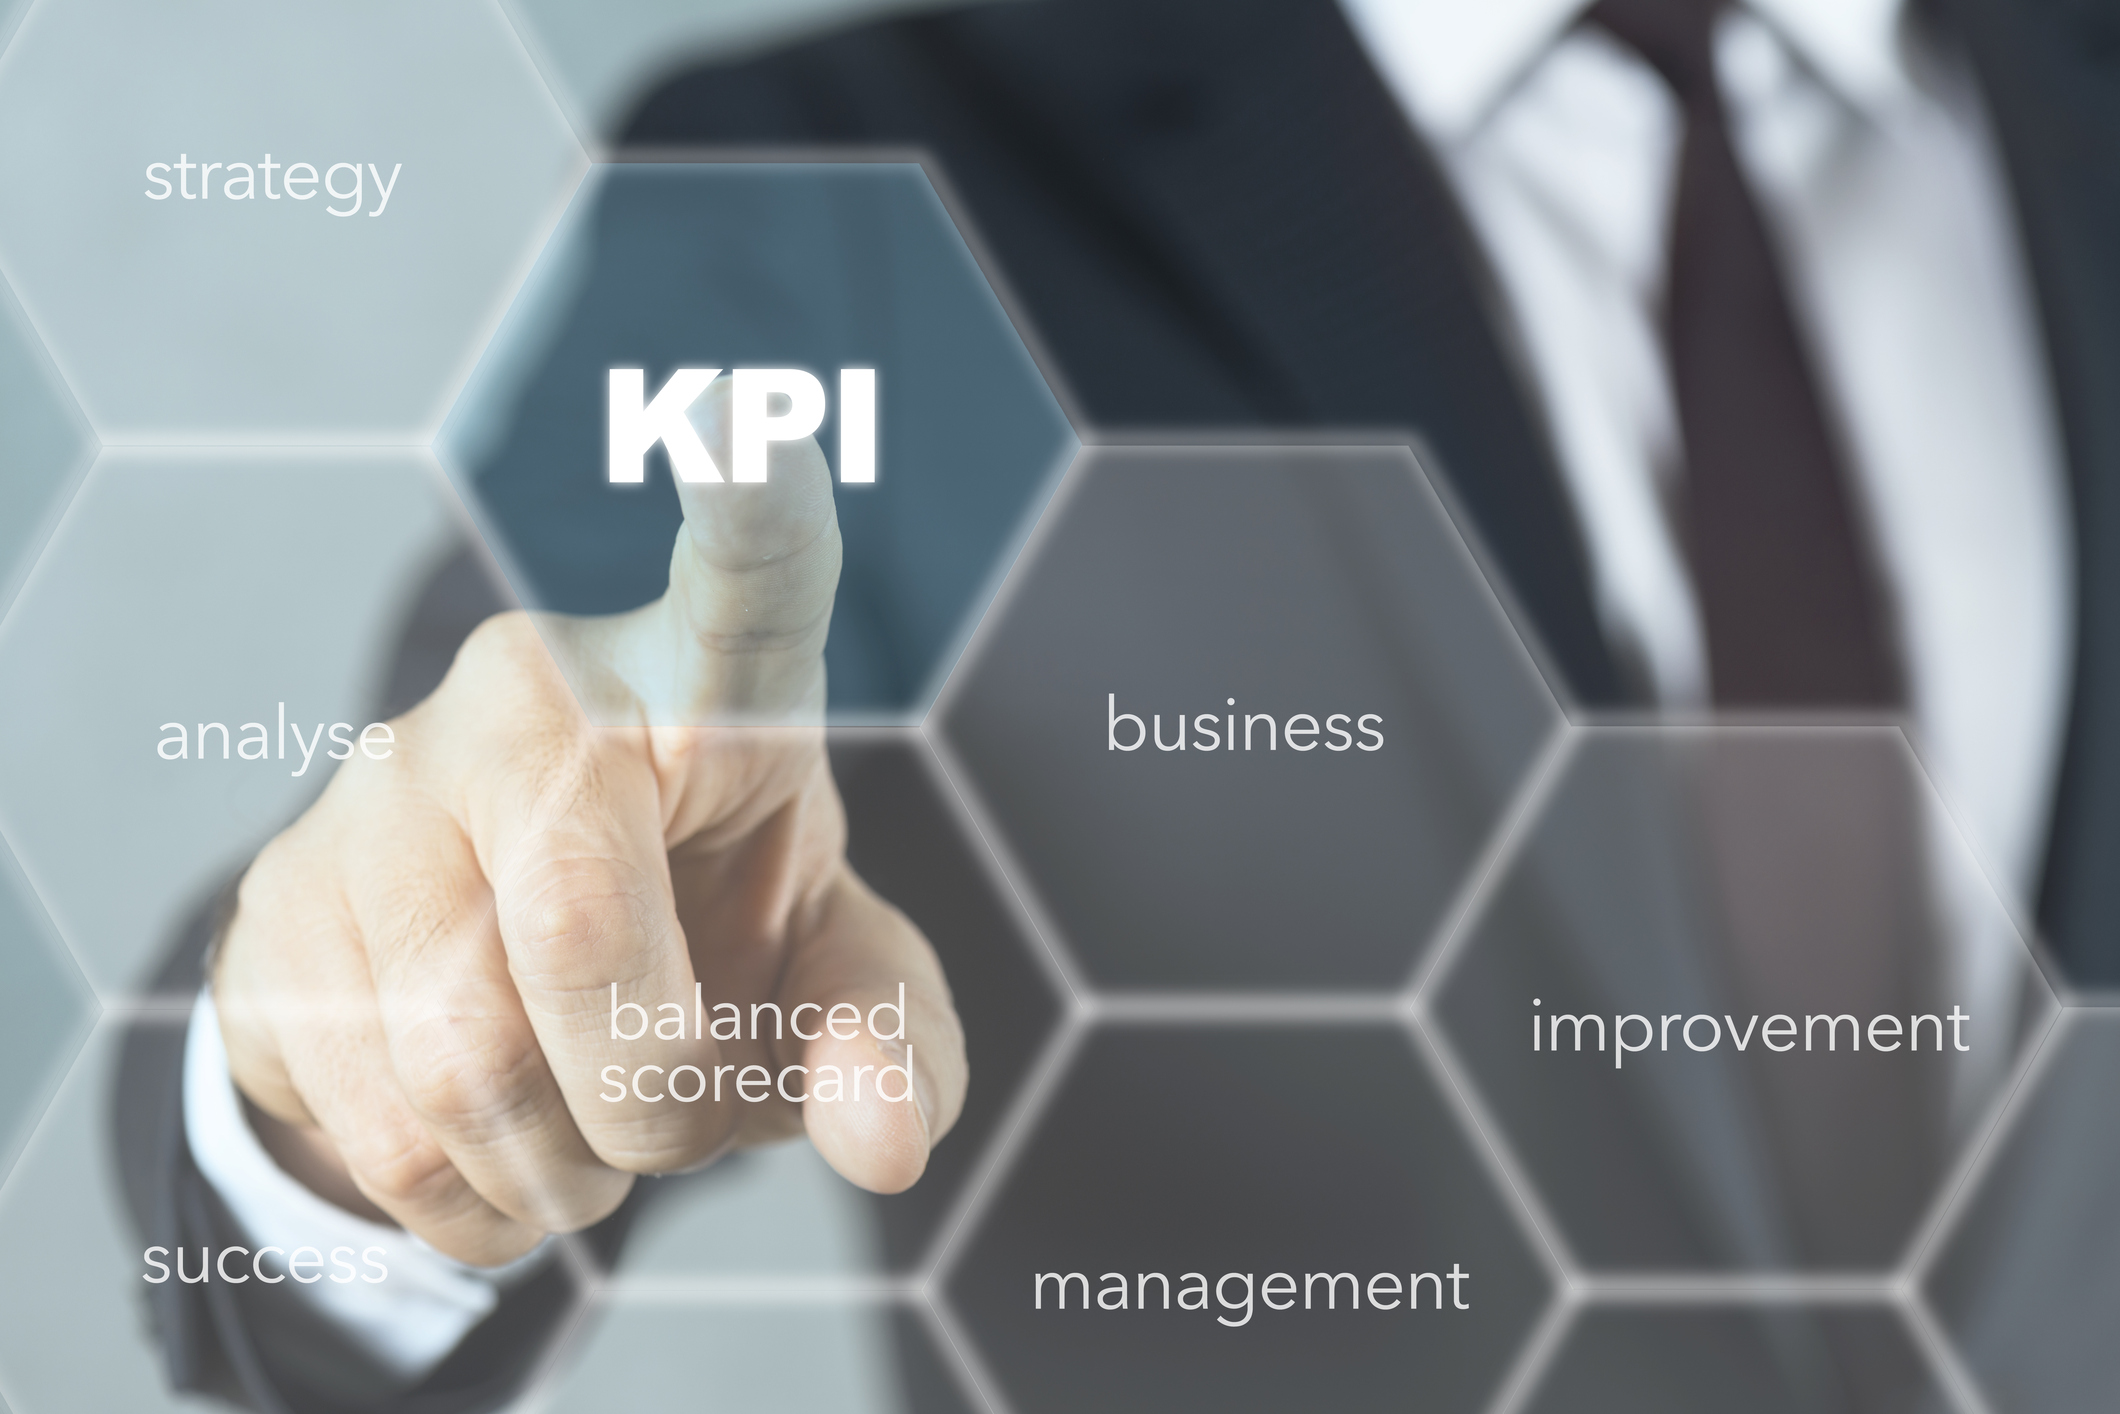 Key Performance Indicator, KPI